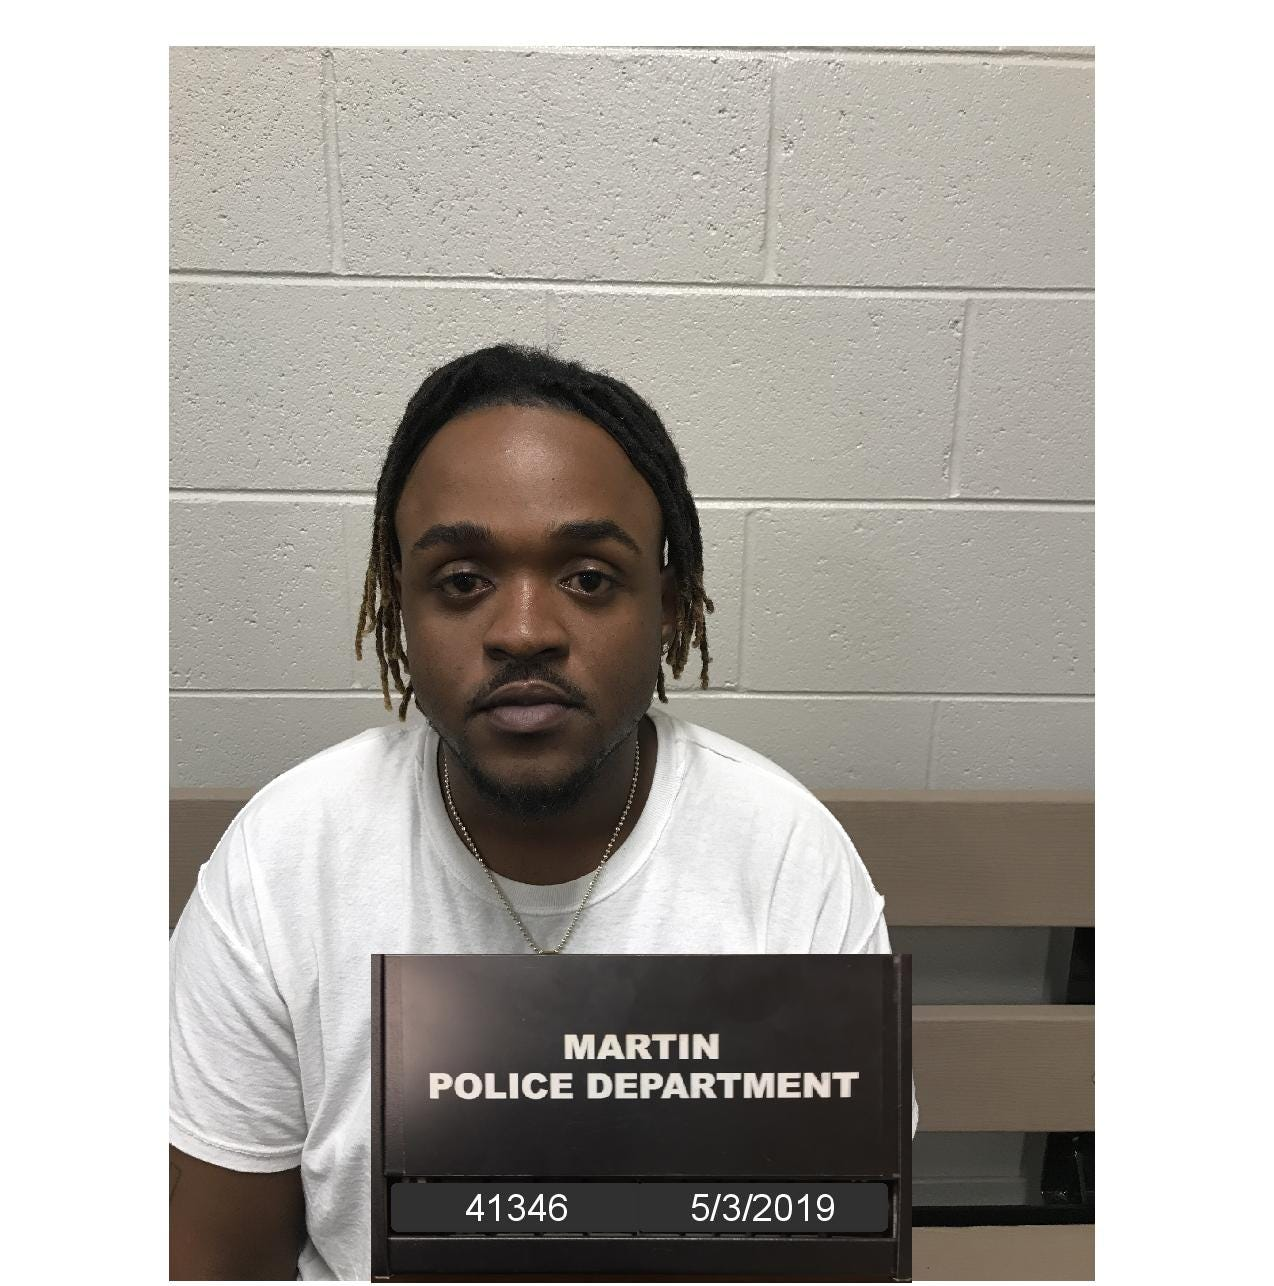 Martin man arrested, charged with statutory rape during investigation into missing juveniles